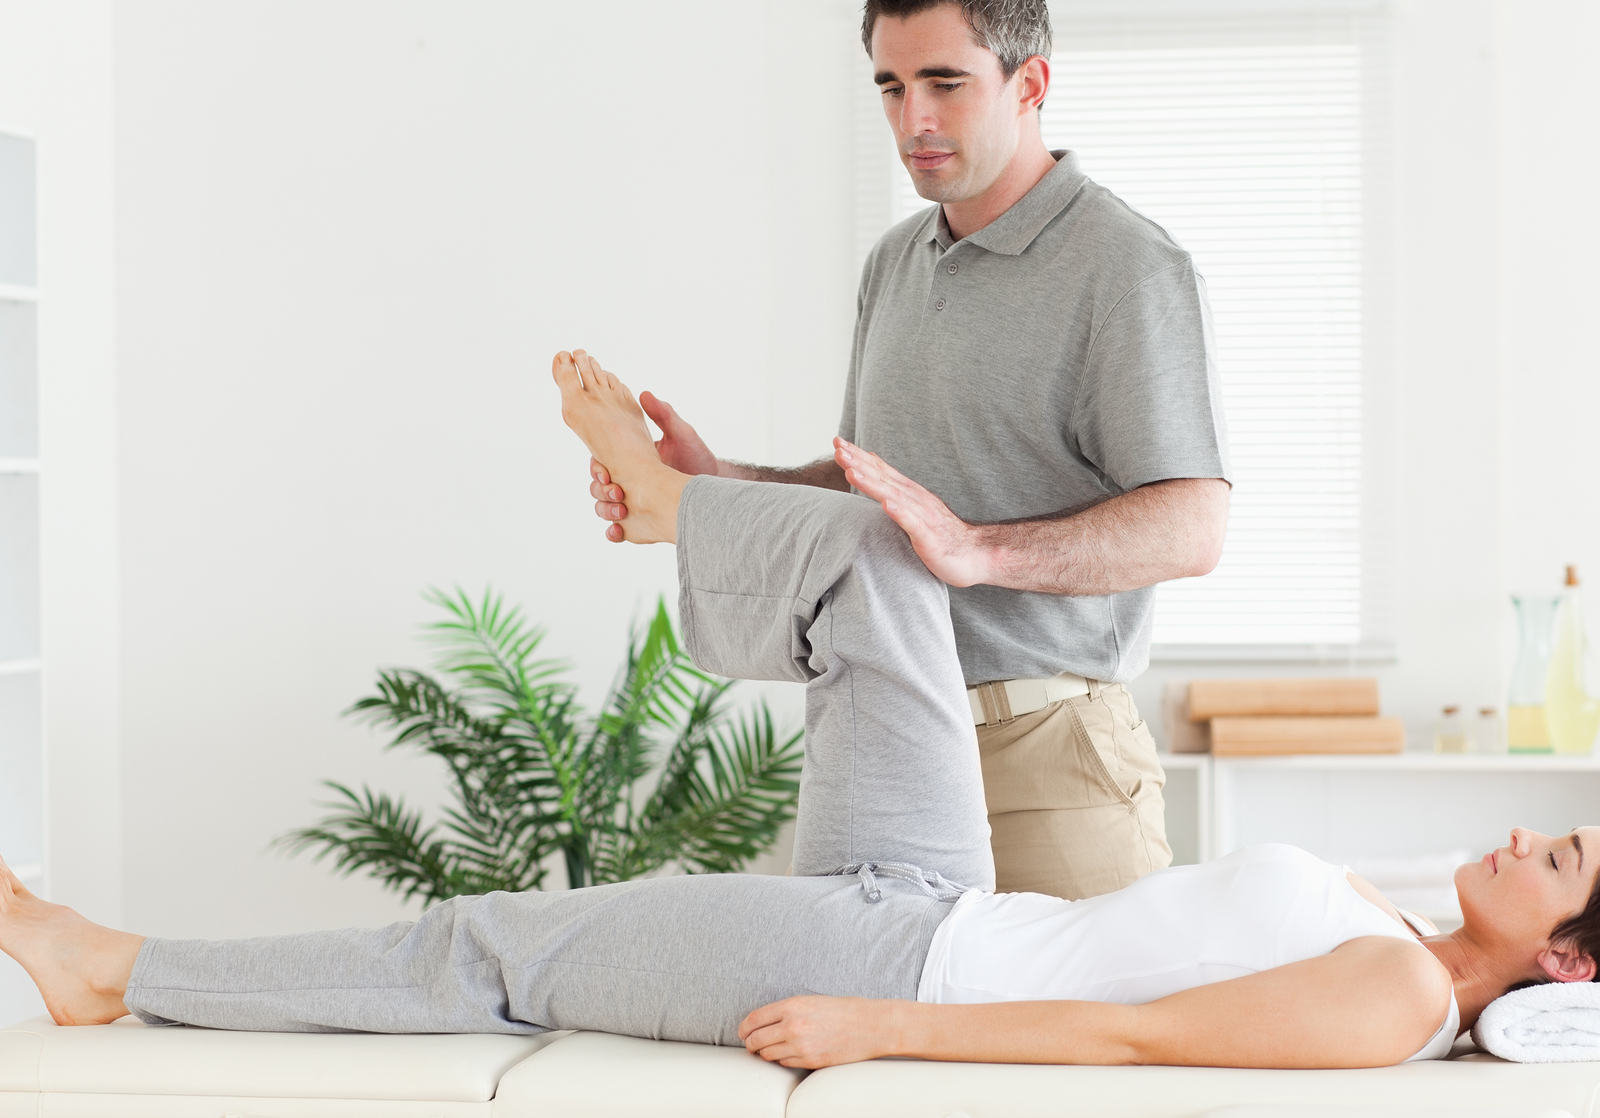 joint pain relief from your arlington heights chiropractor